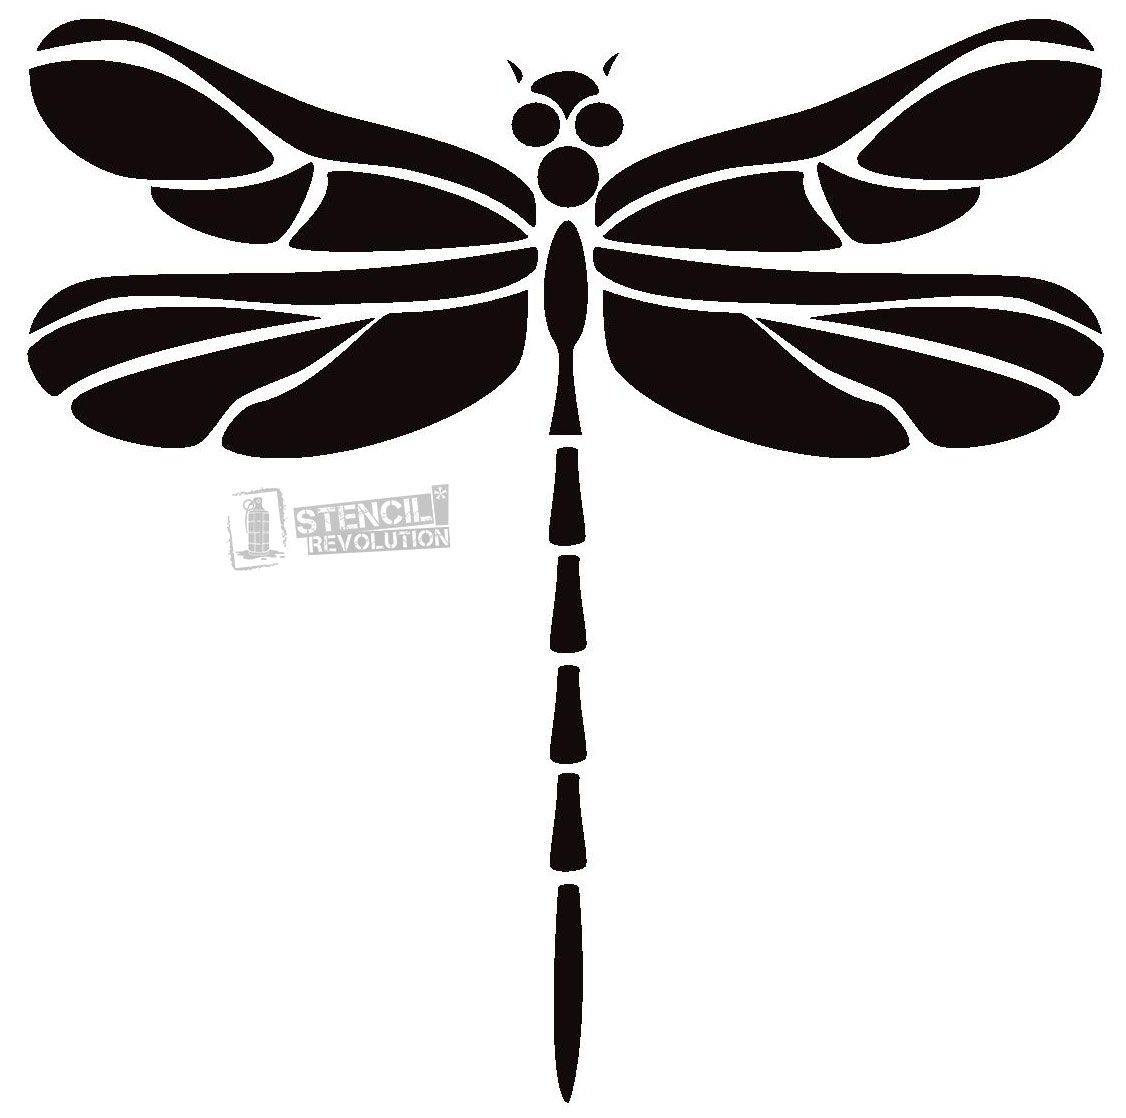 graphic relating to Dragonfly Template Printable called Dragonfly Stencil Stencils Printable stencil routines